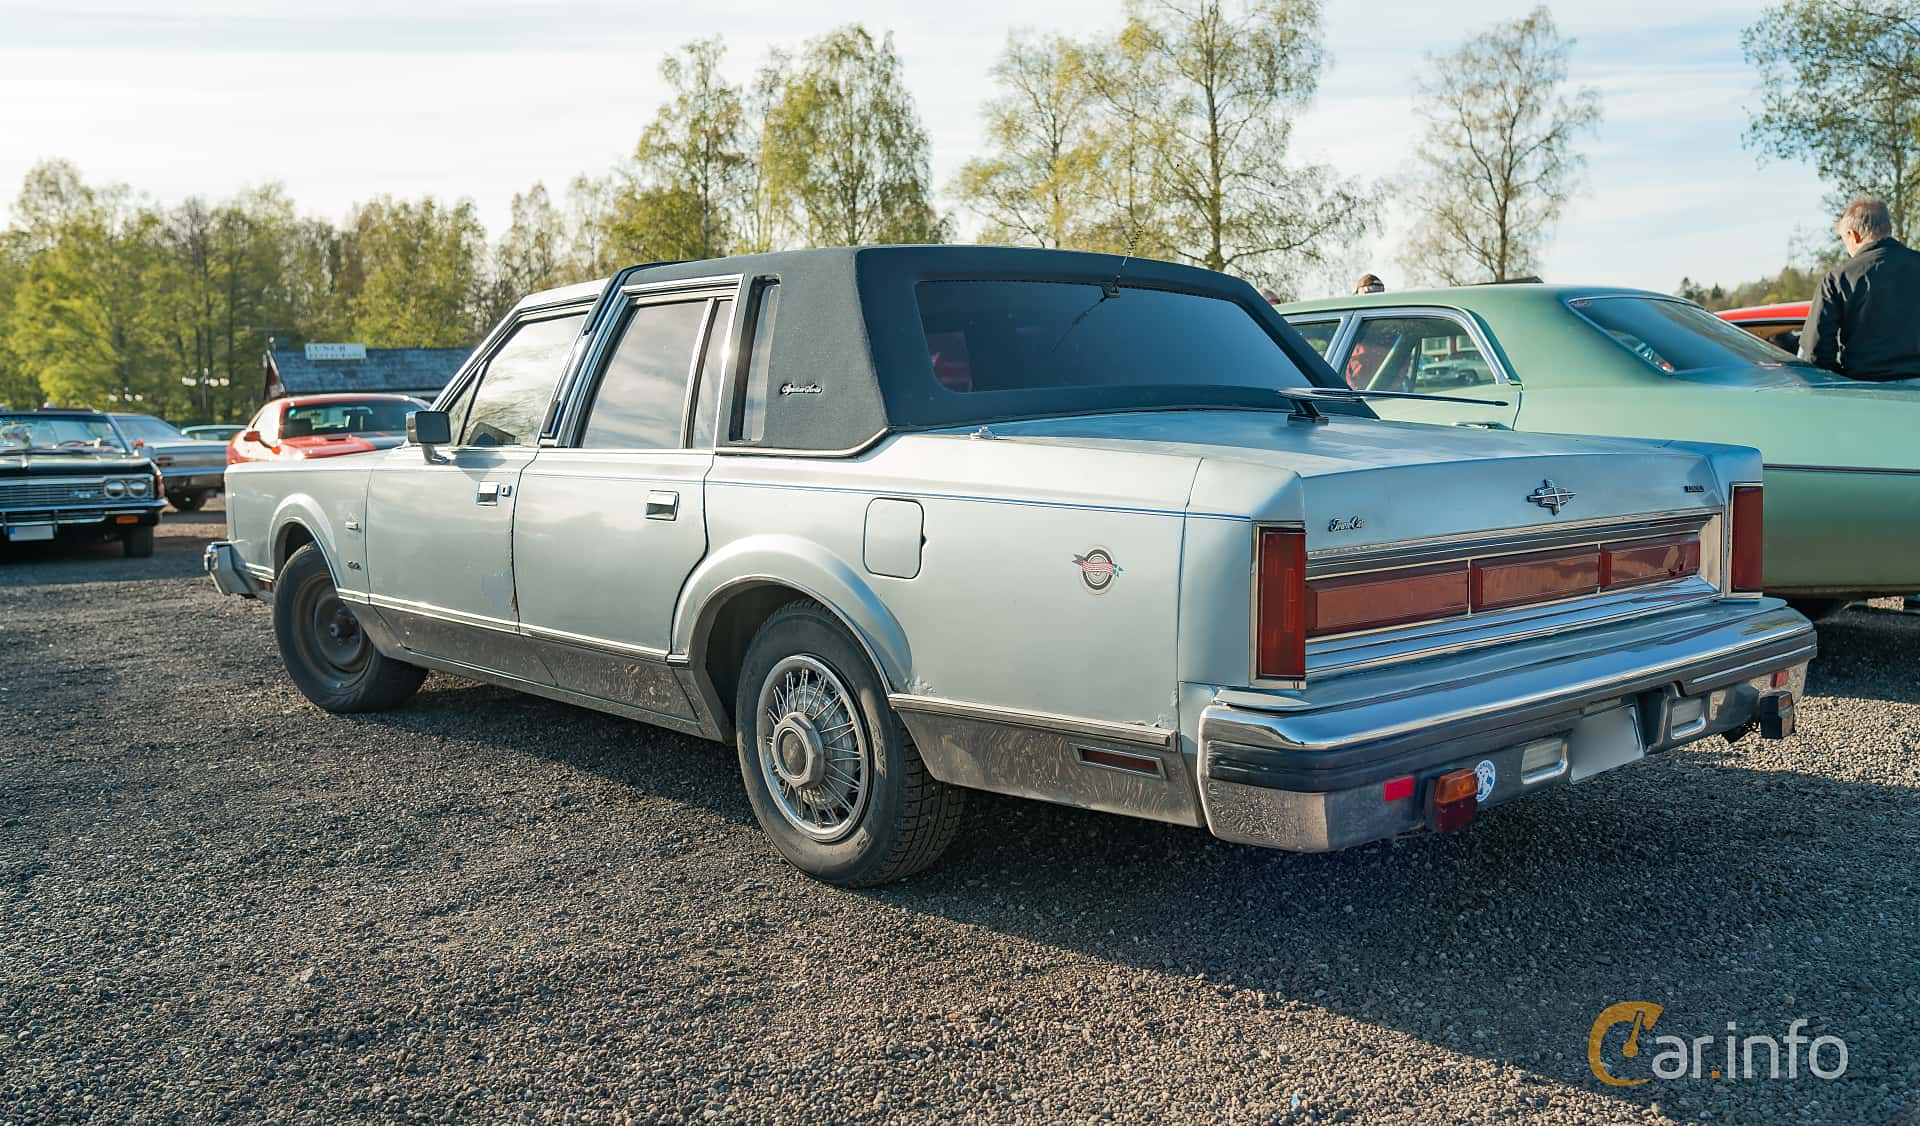 Lincoln Town Car 4-door 4.9 V8 Automatic, 142hp, 1984 at Lissma Classic Car 2019 vecka 20